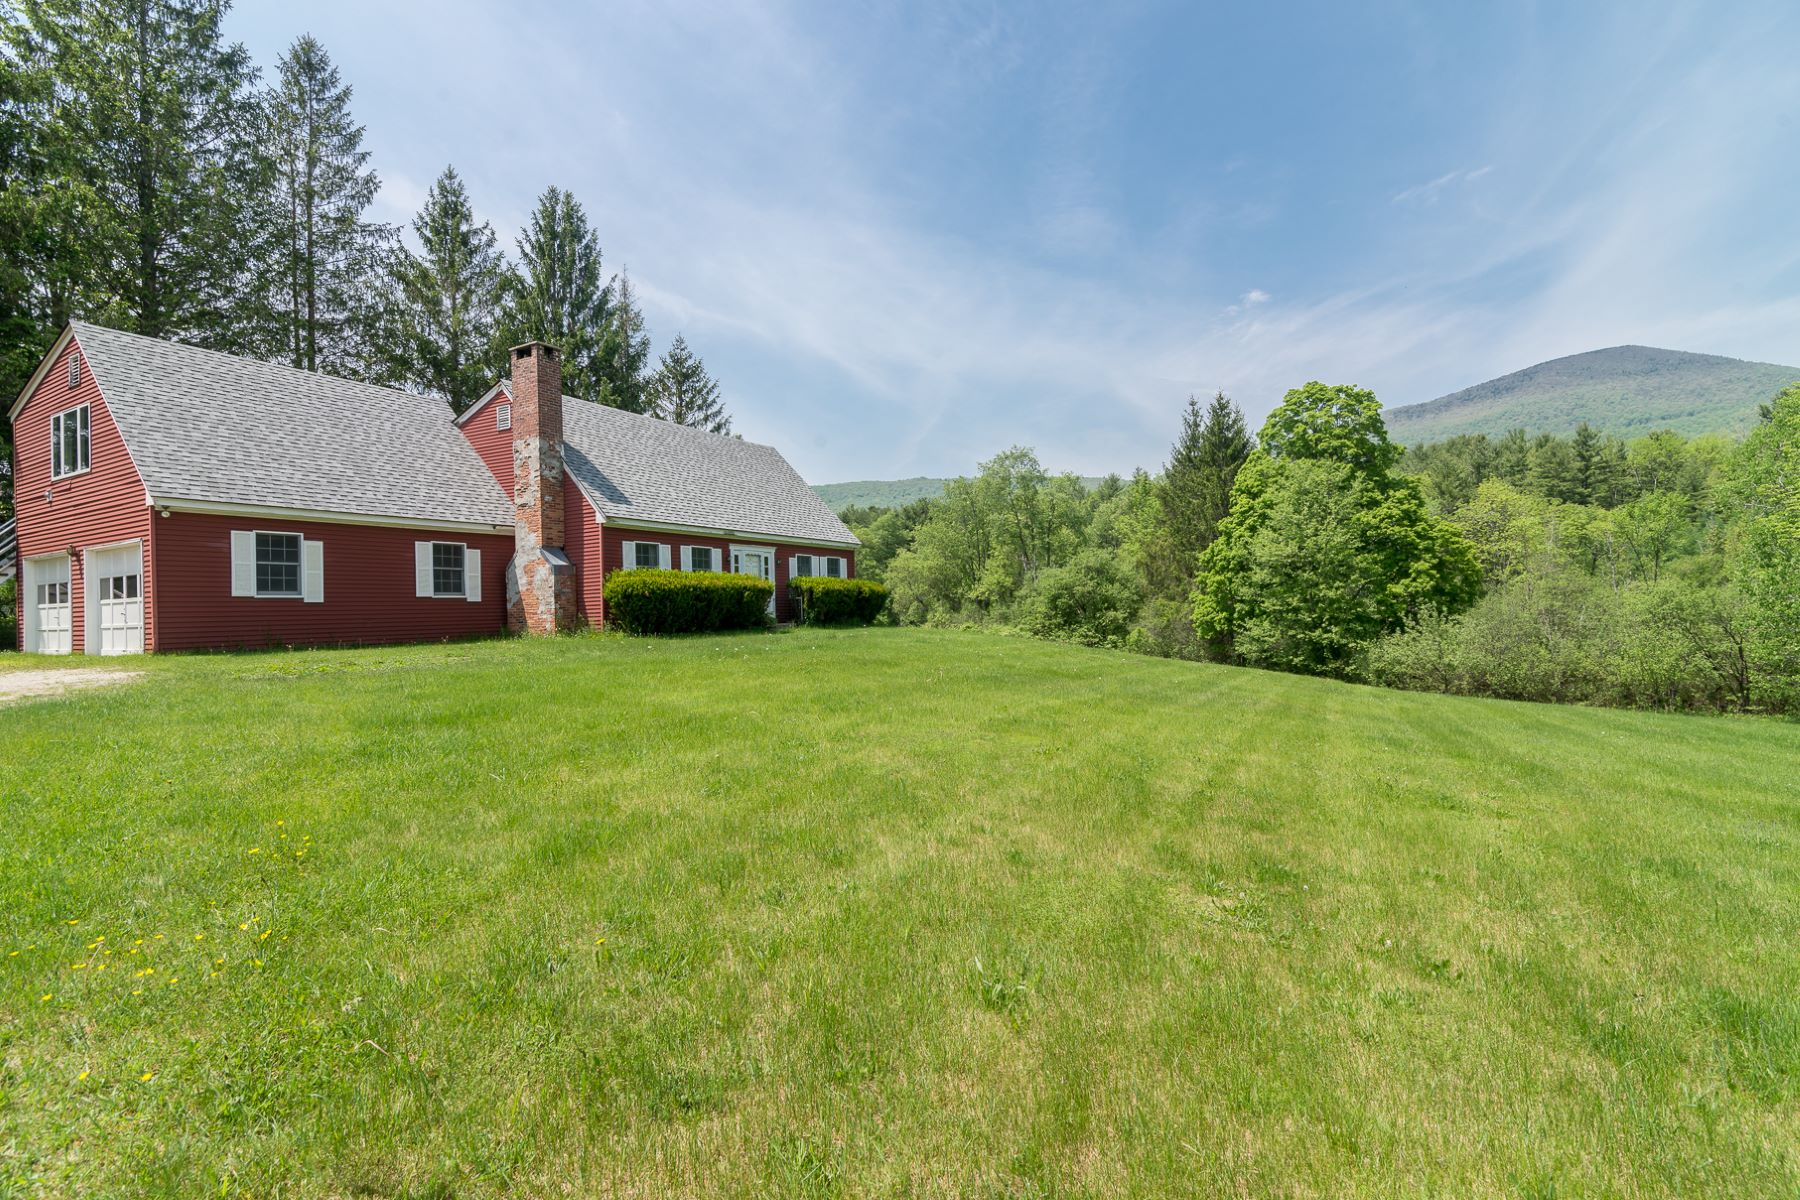 Single Family Home for Sale at Equinox Valley Farmhouse 6390 Route 7 A Sunderland, Vermont 05250 United States